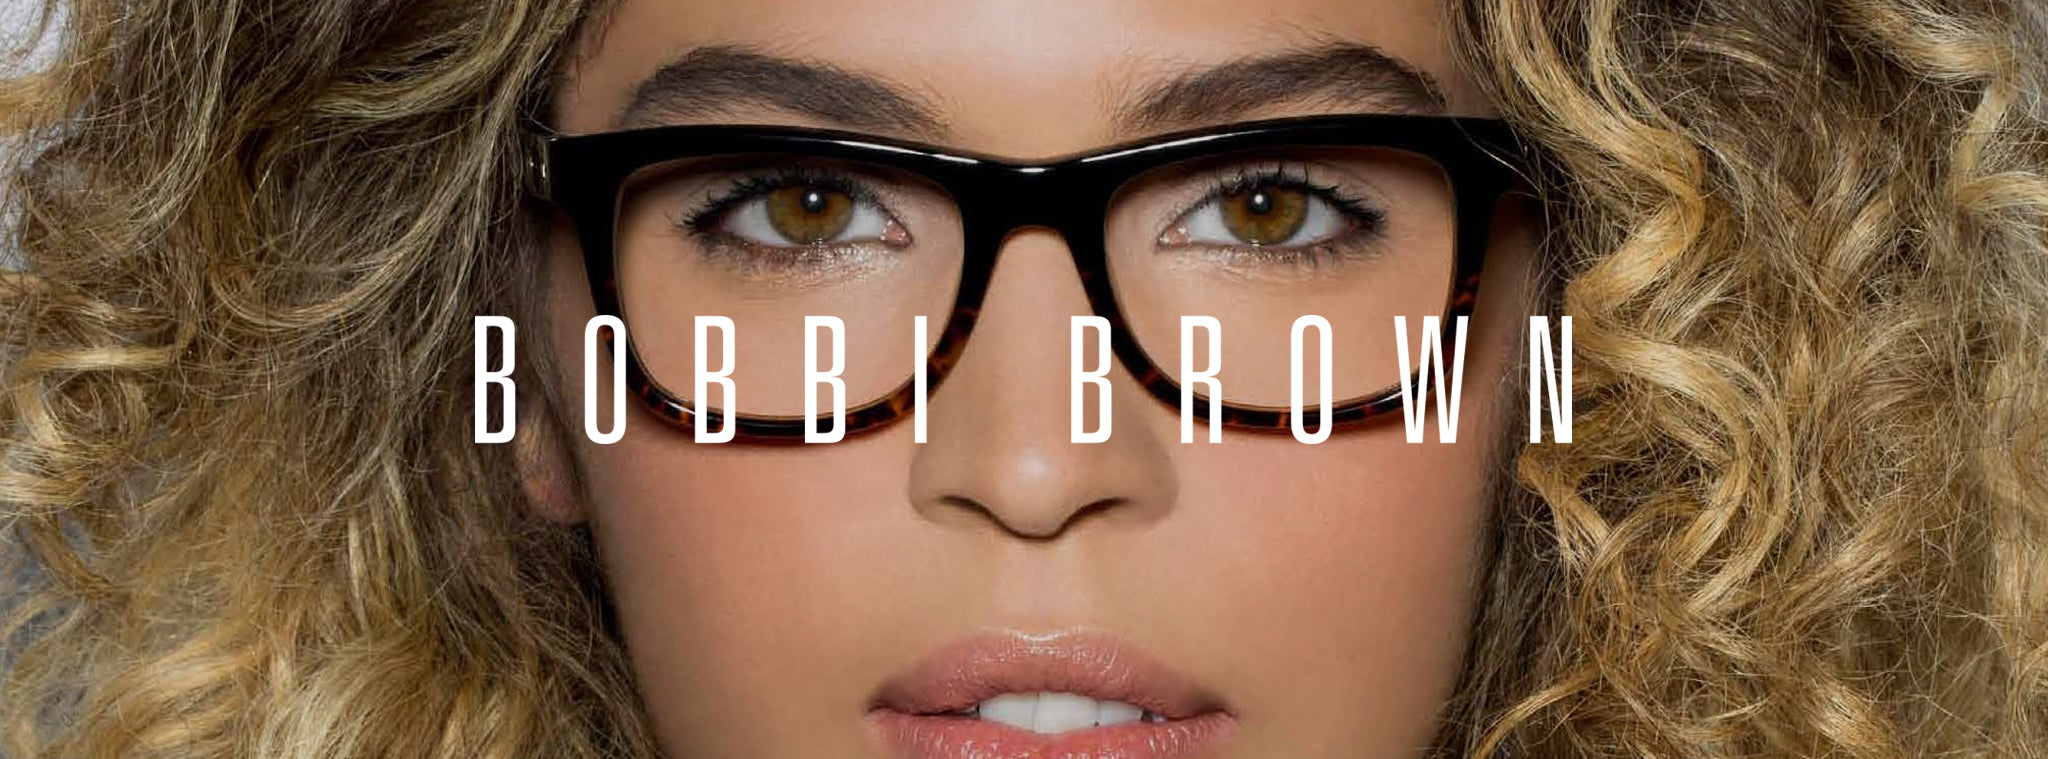 Bobbi Brown Eyewear